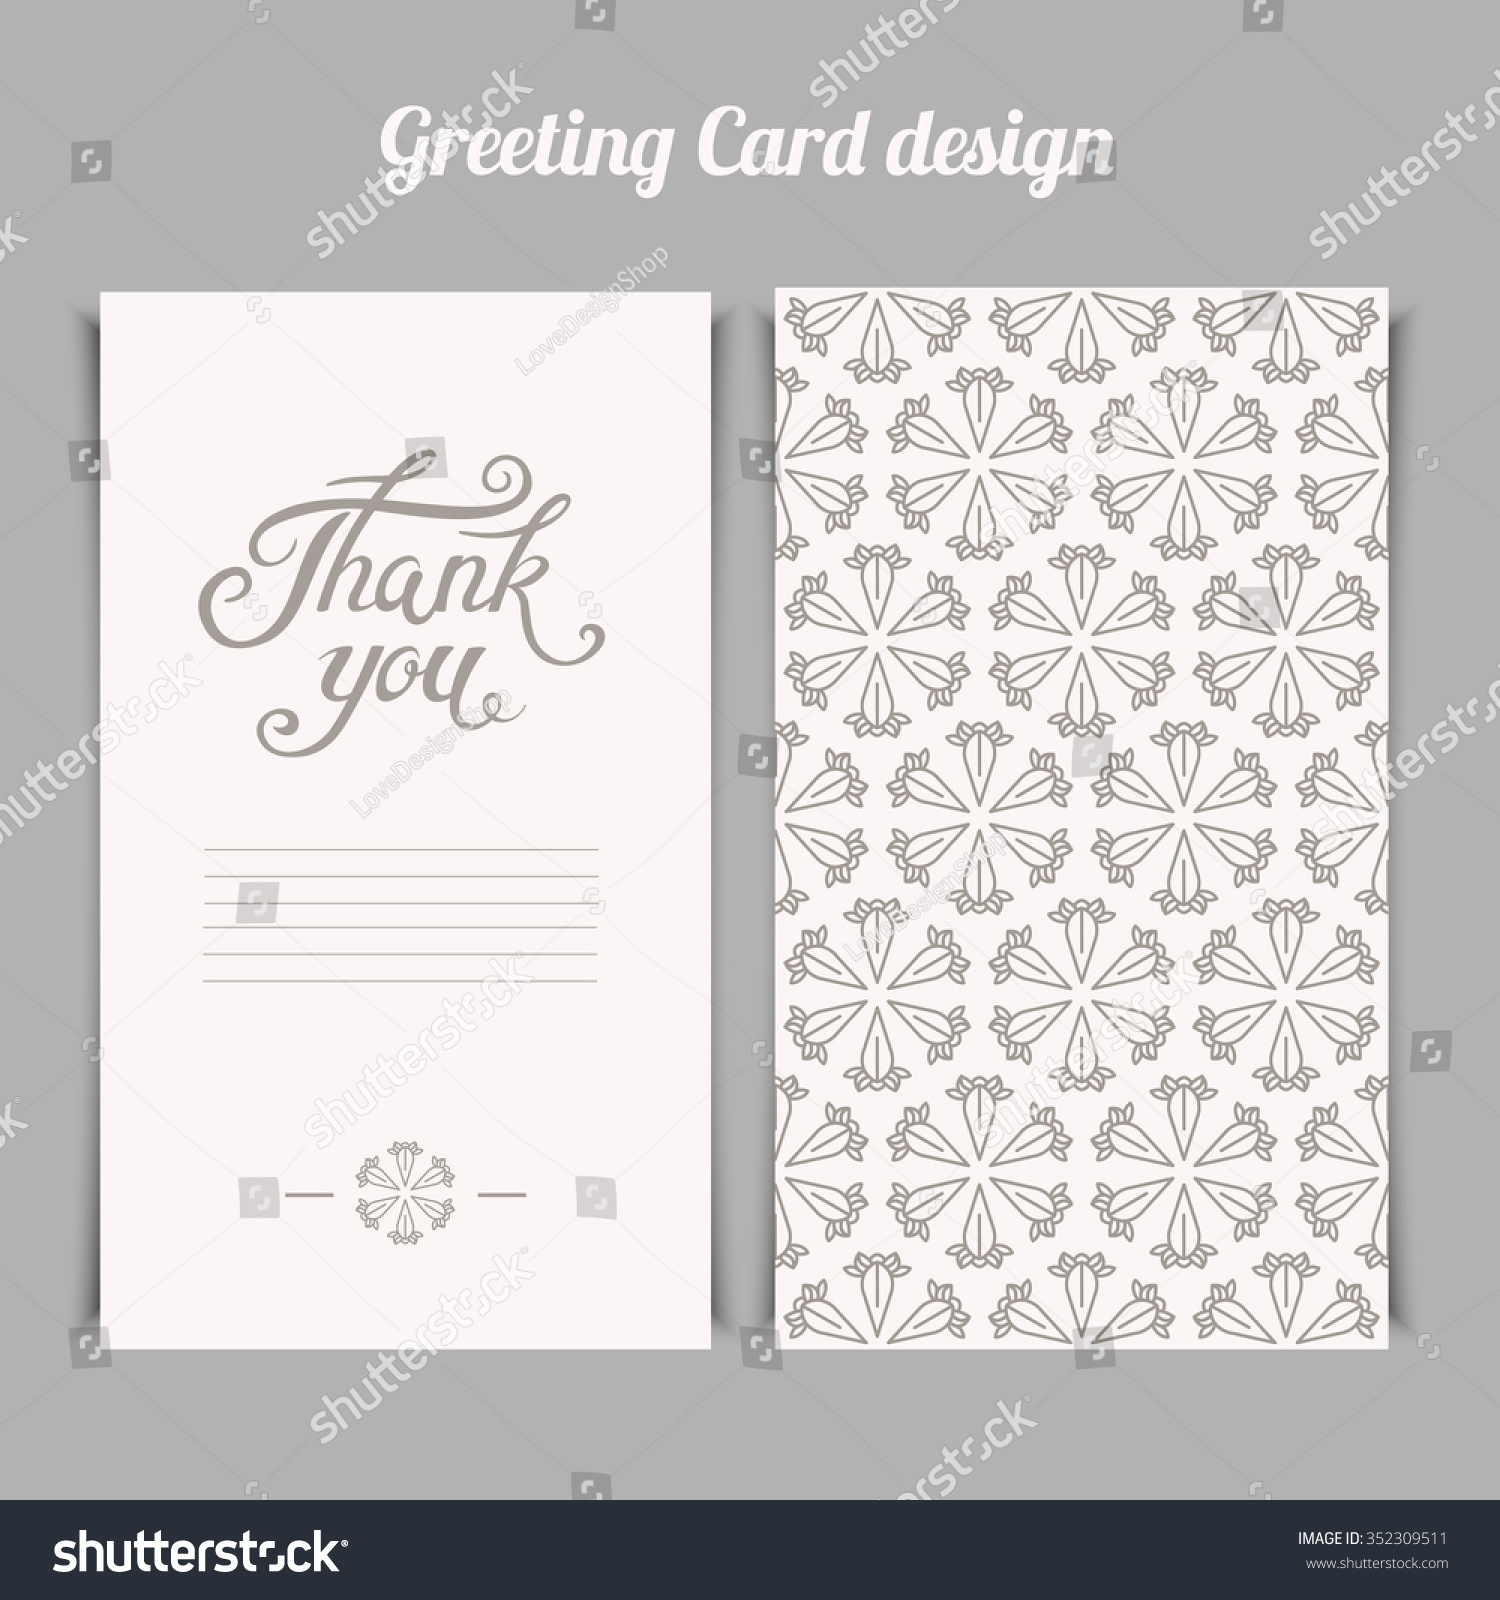 Elegant thank you card template silver stock vector hd royalty free elegant thank you card template with silver floral pattern vector greeting card design spiritdancerdesigns Choice Image